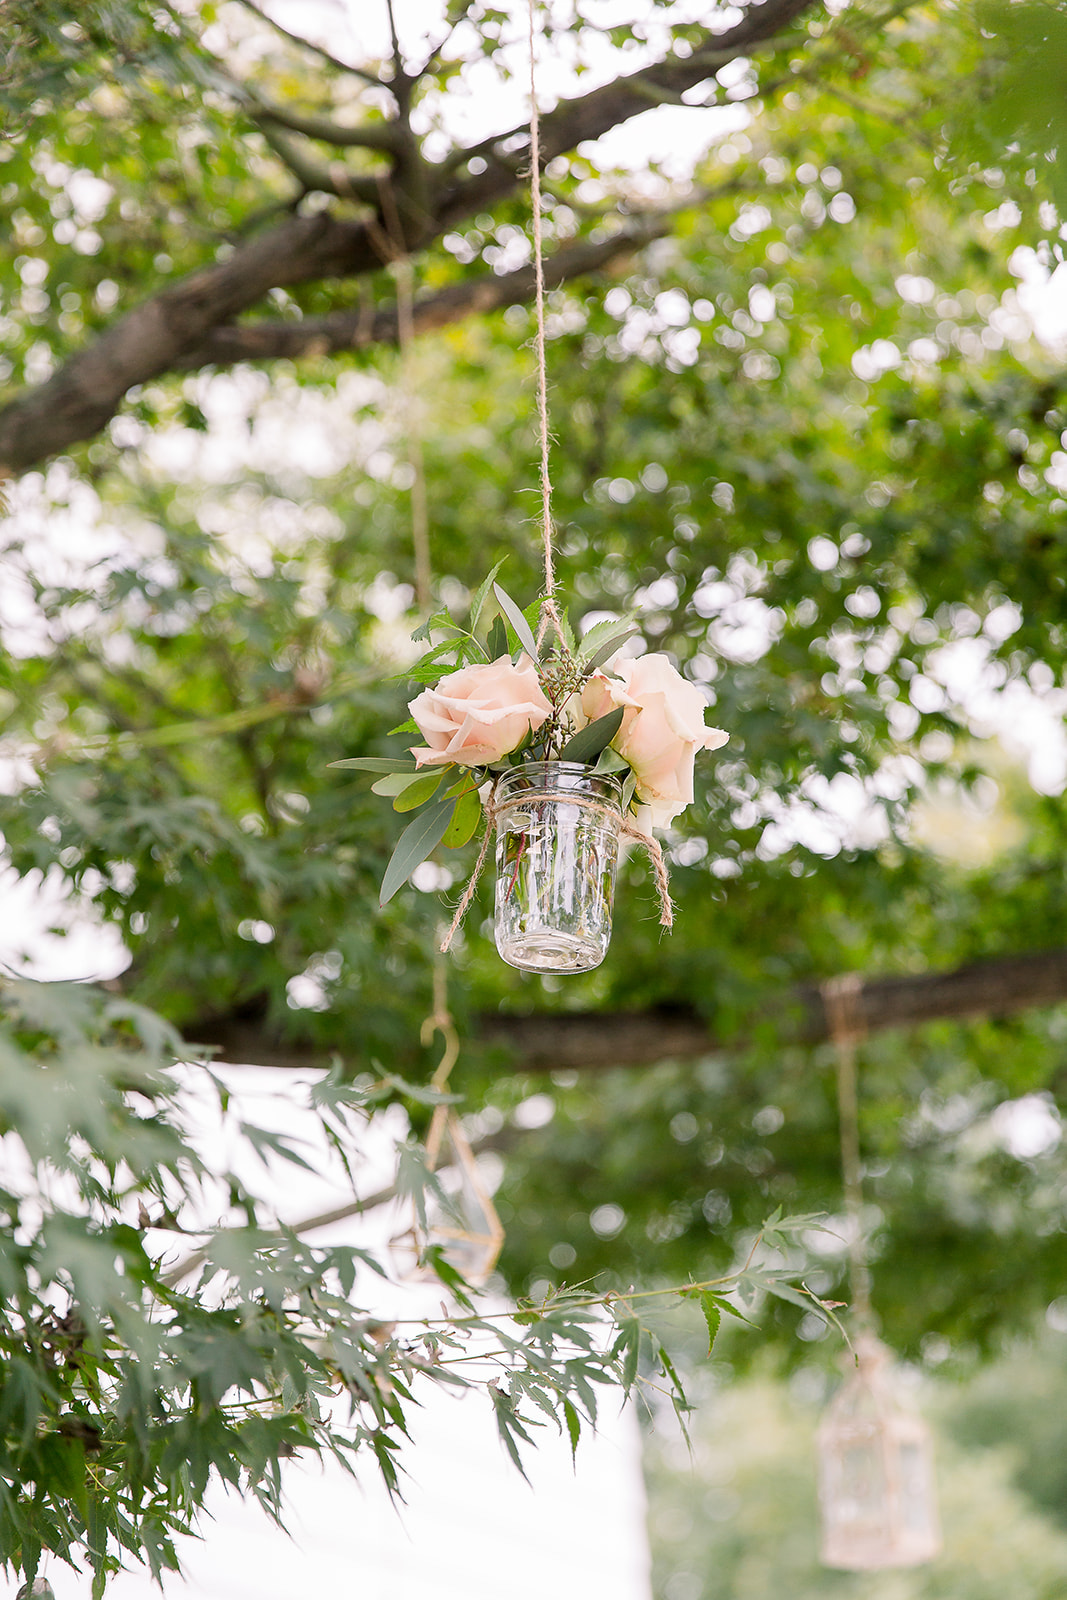 Nicole-Adele-B.mingled-hanging-florals-pink-roses-feather-euc-glass-jars-jmorrisflowers.jpg